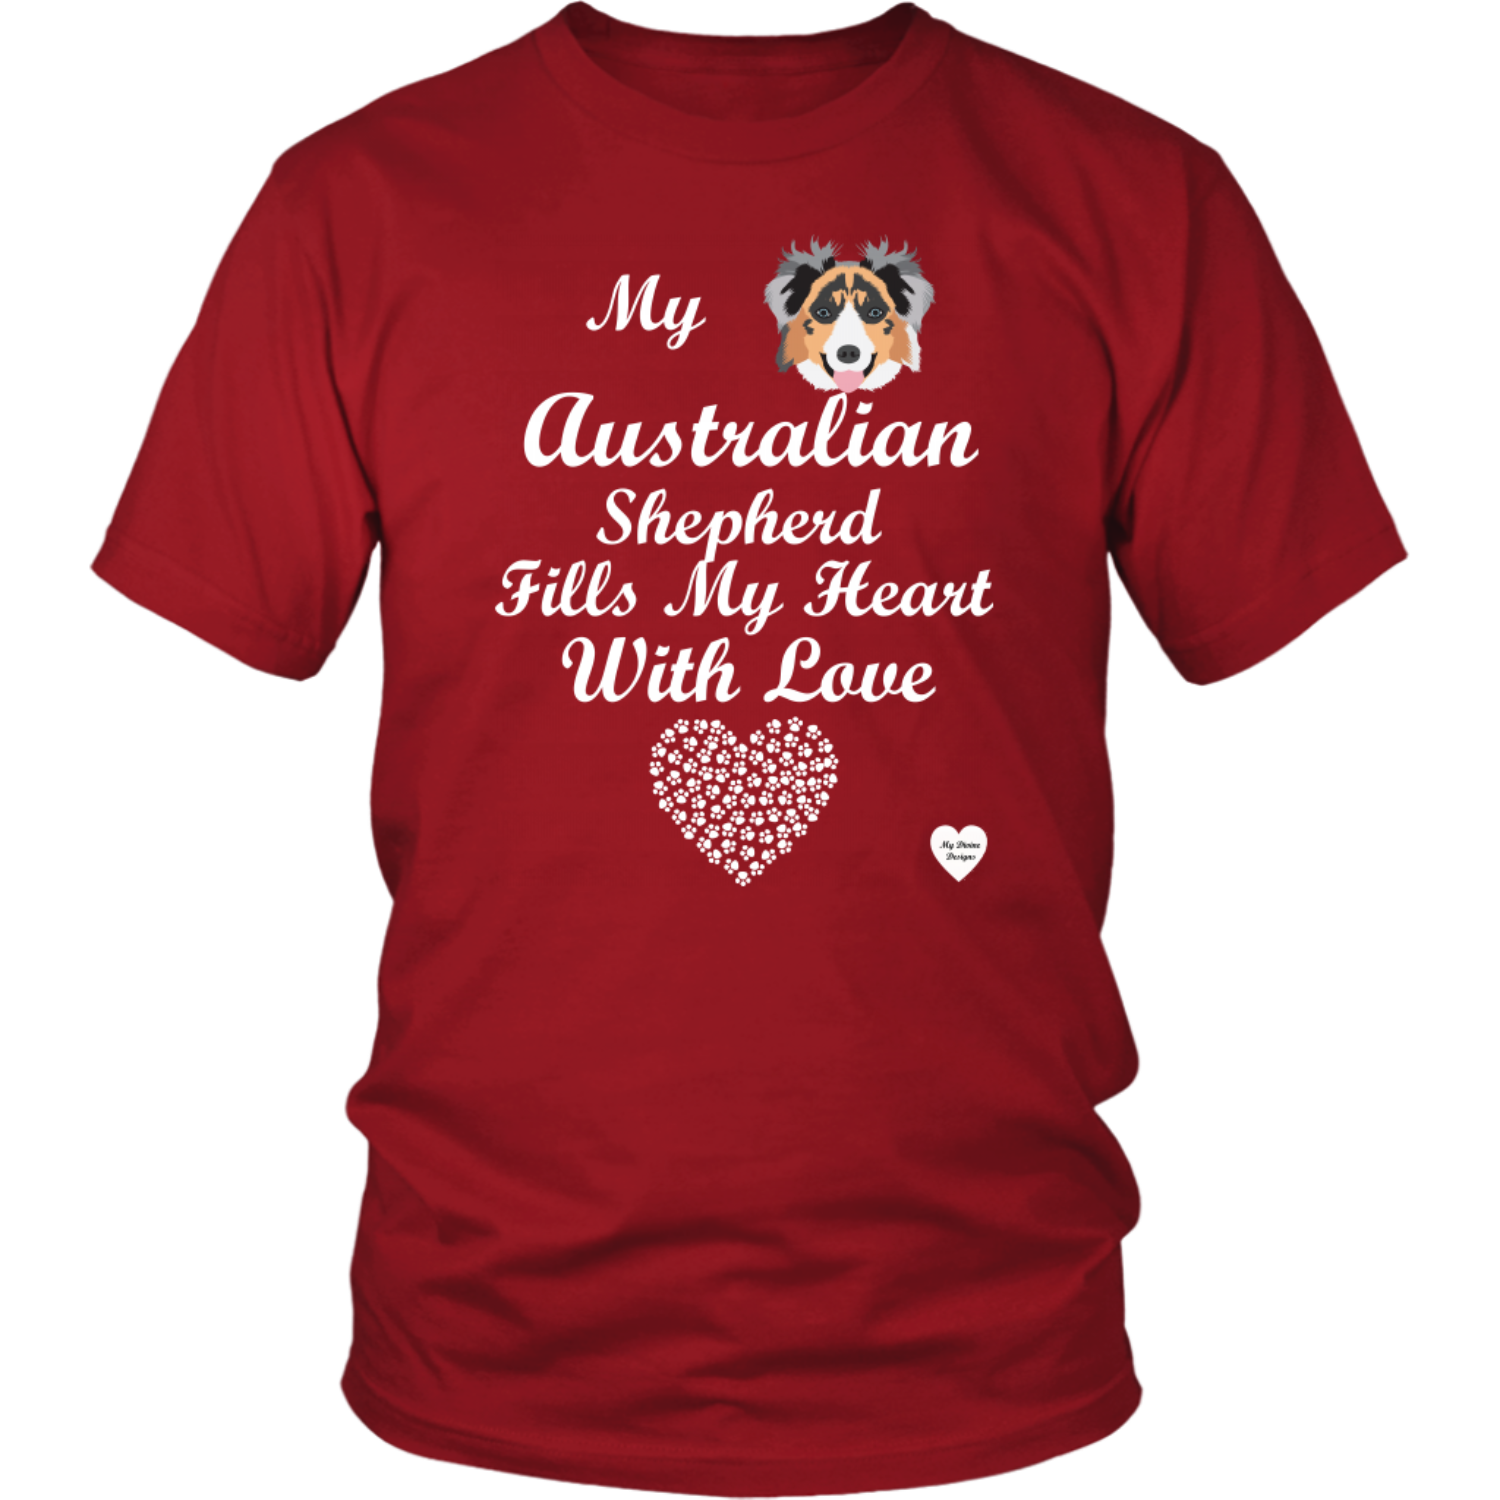 australian shepherd fills my heart t-shirt red